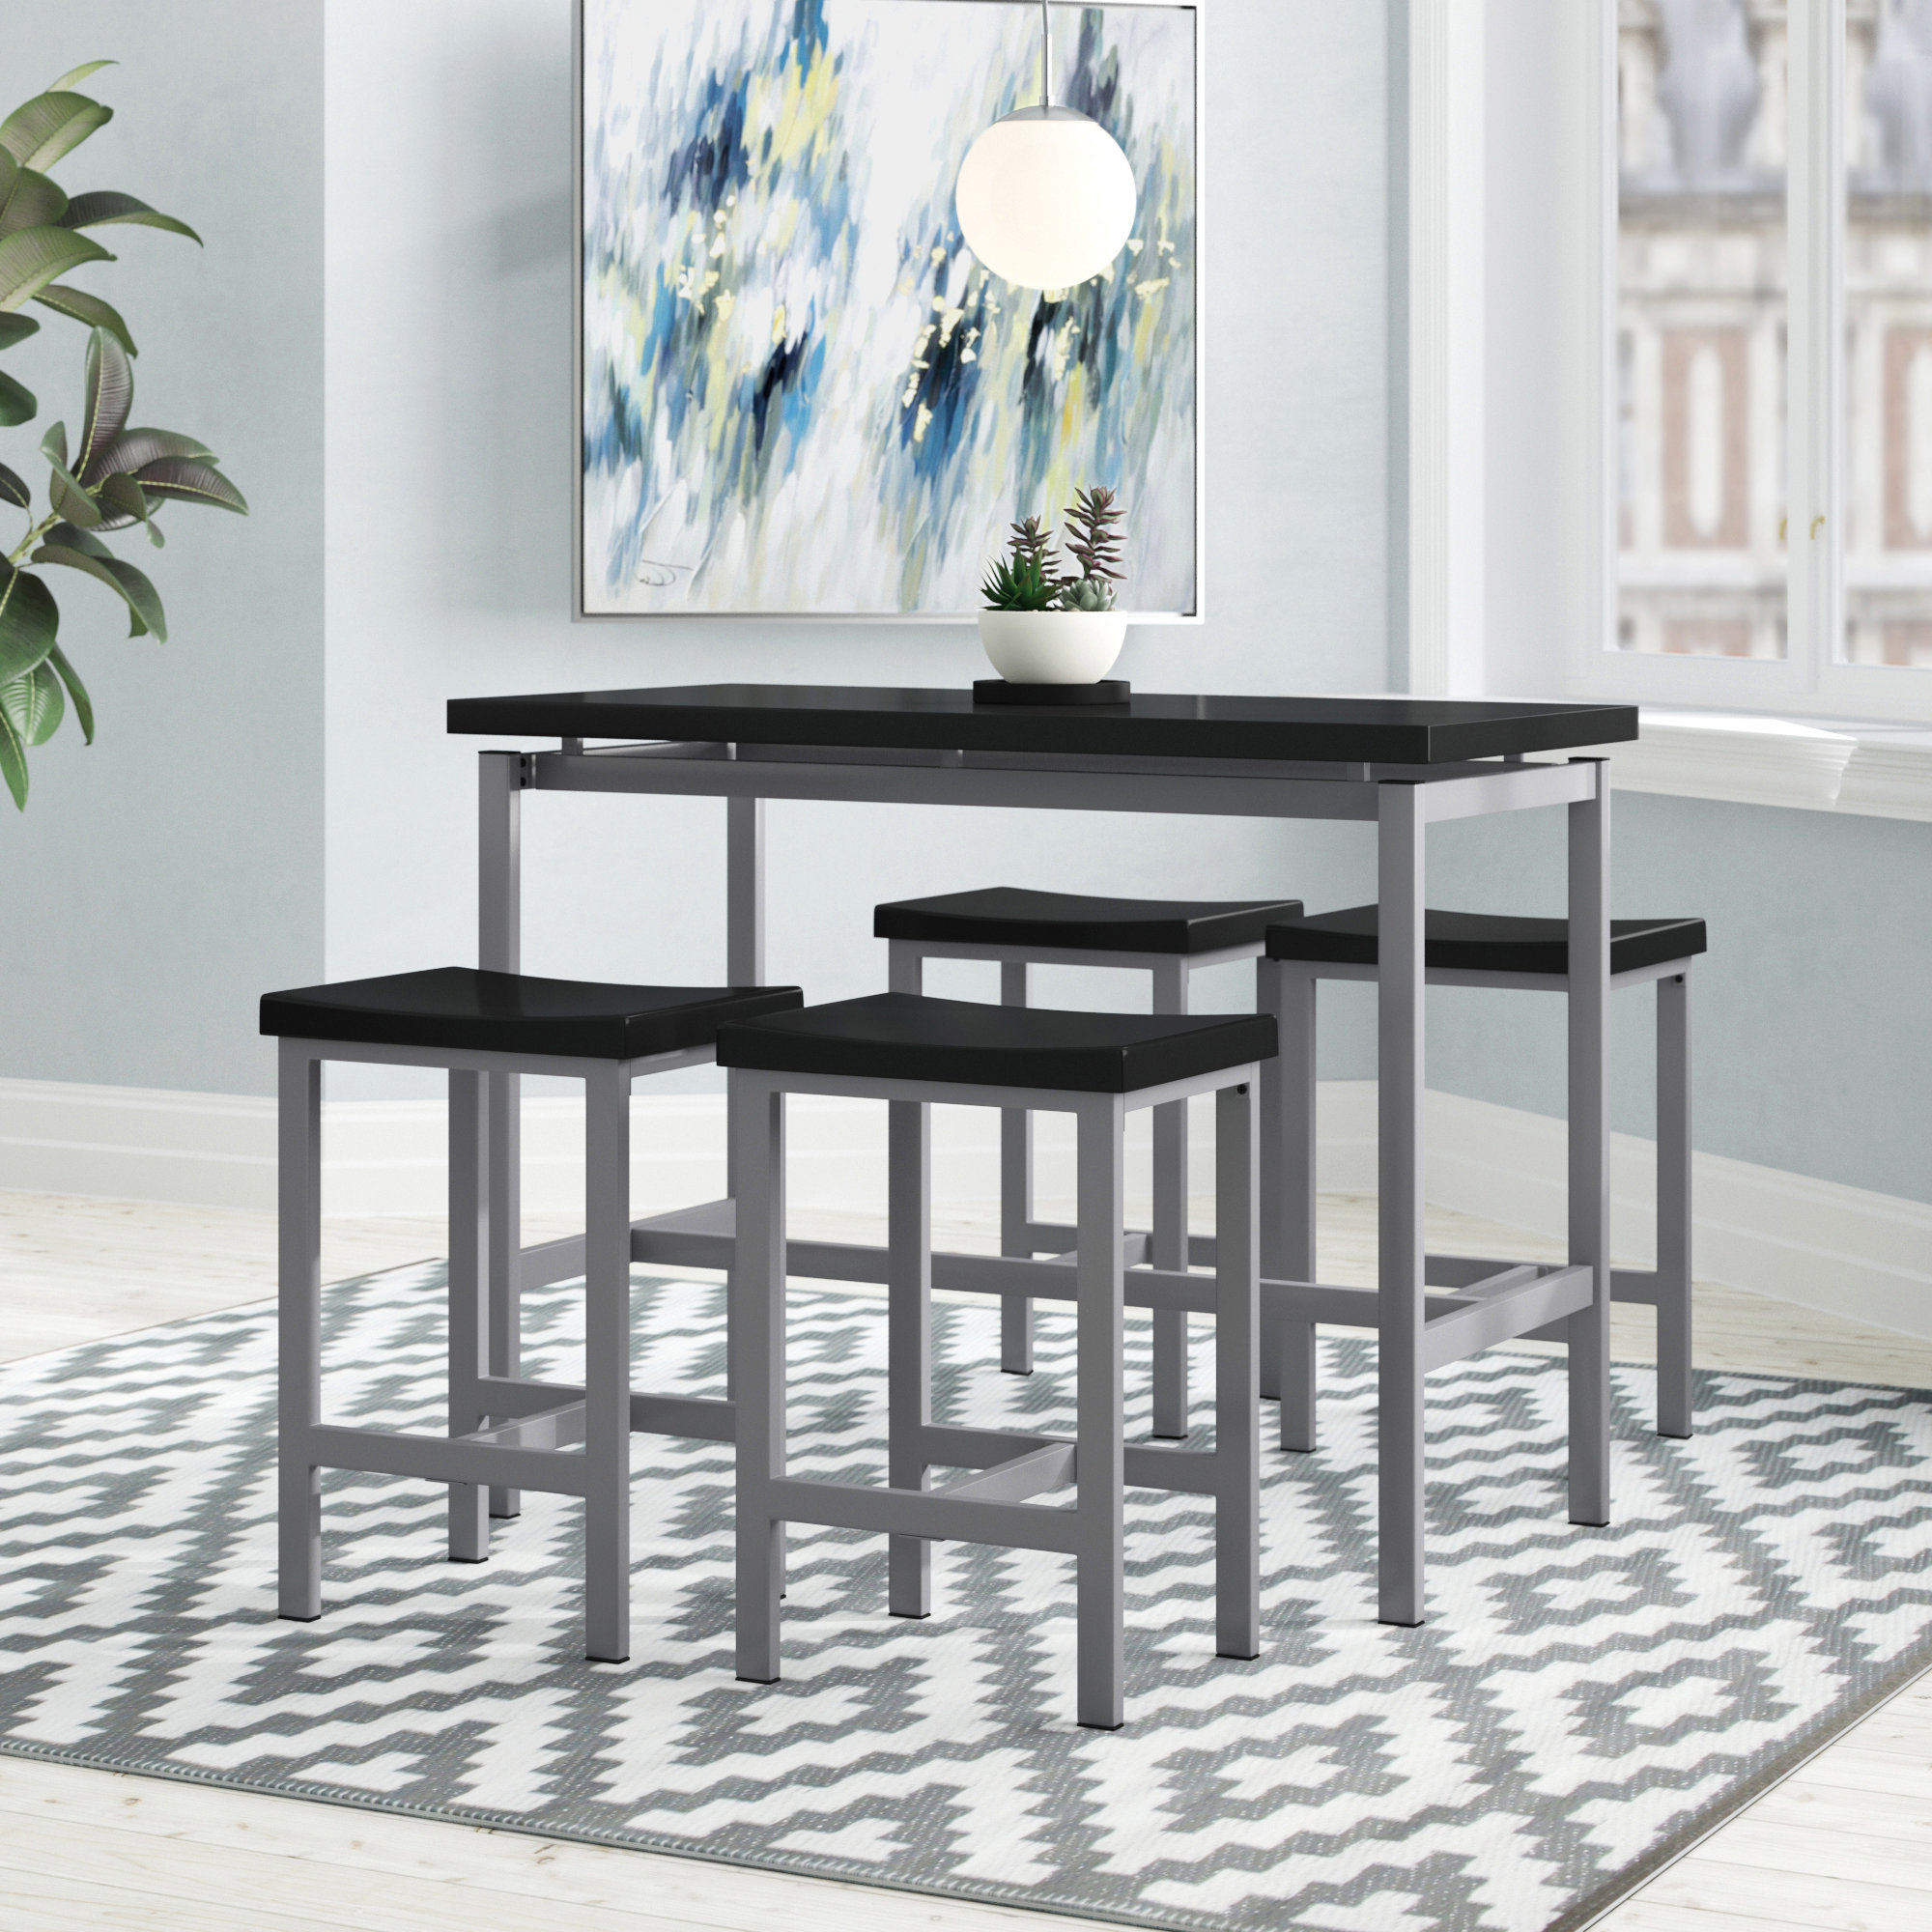 Denzel 5 Piece Counter Height Breakfast Nook Dining Sets with Most Recently Released Ebern Designs Mysliwiec 5 Piece Counter Height Breakfast Nook Dining